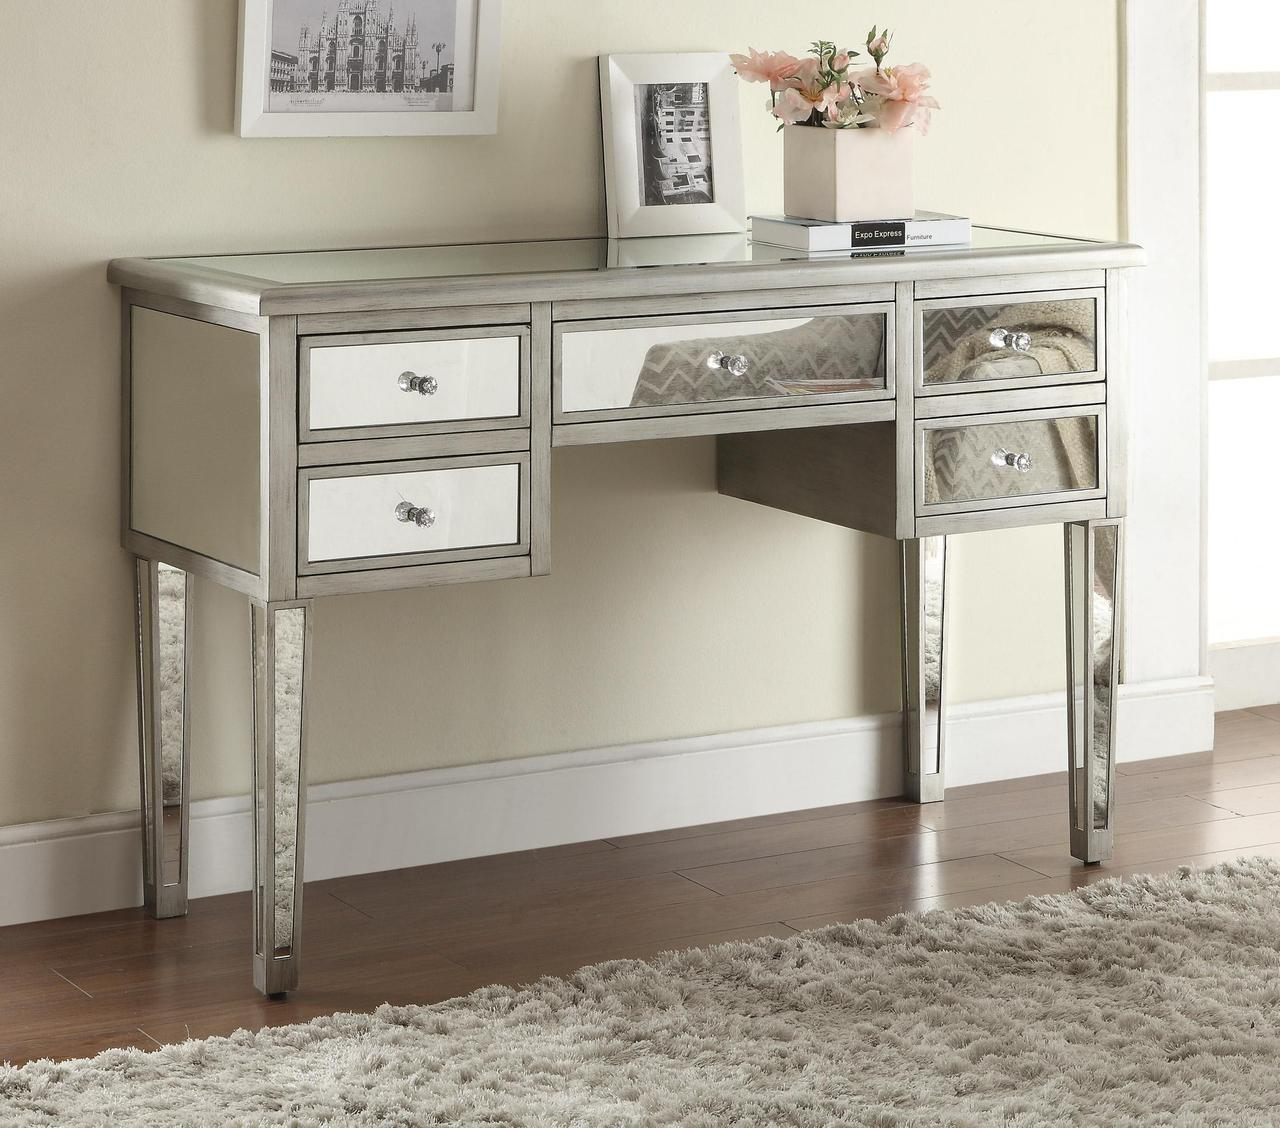 Image of: Mirrored Vanity Table Benefit